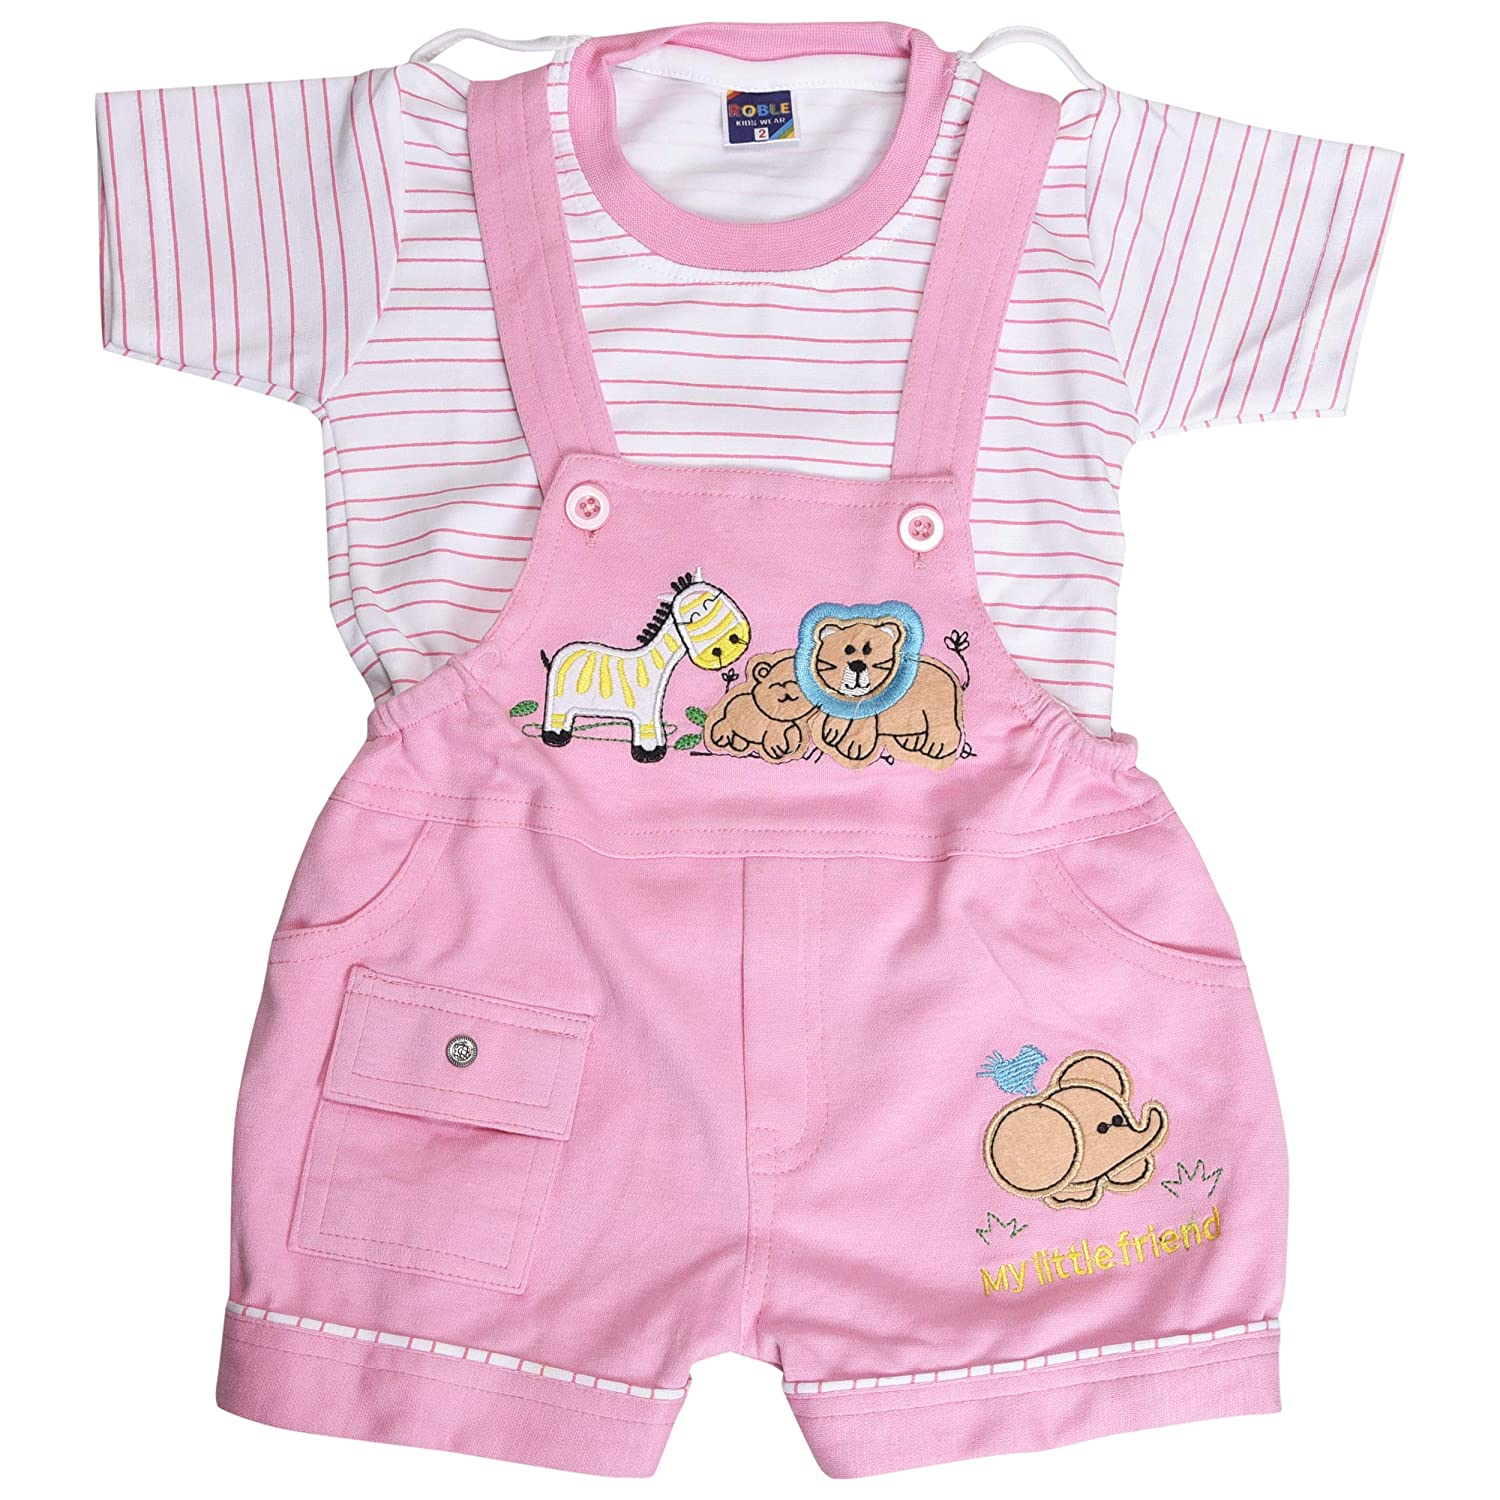 2a147f846ae Roble Party Wear Romper Baba Suit Dungree Jumpsuit Pink Outfits For Newbron  Babies Boys   Girls 6 Months -2 Years  Amazon.in  Clothing   Accessories